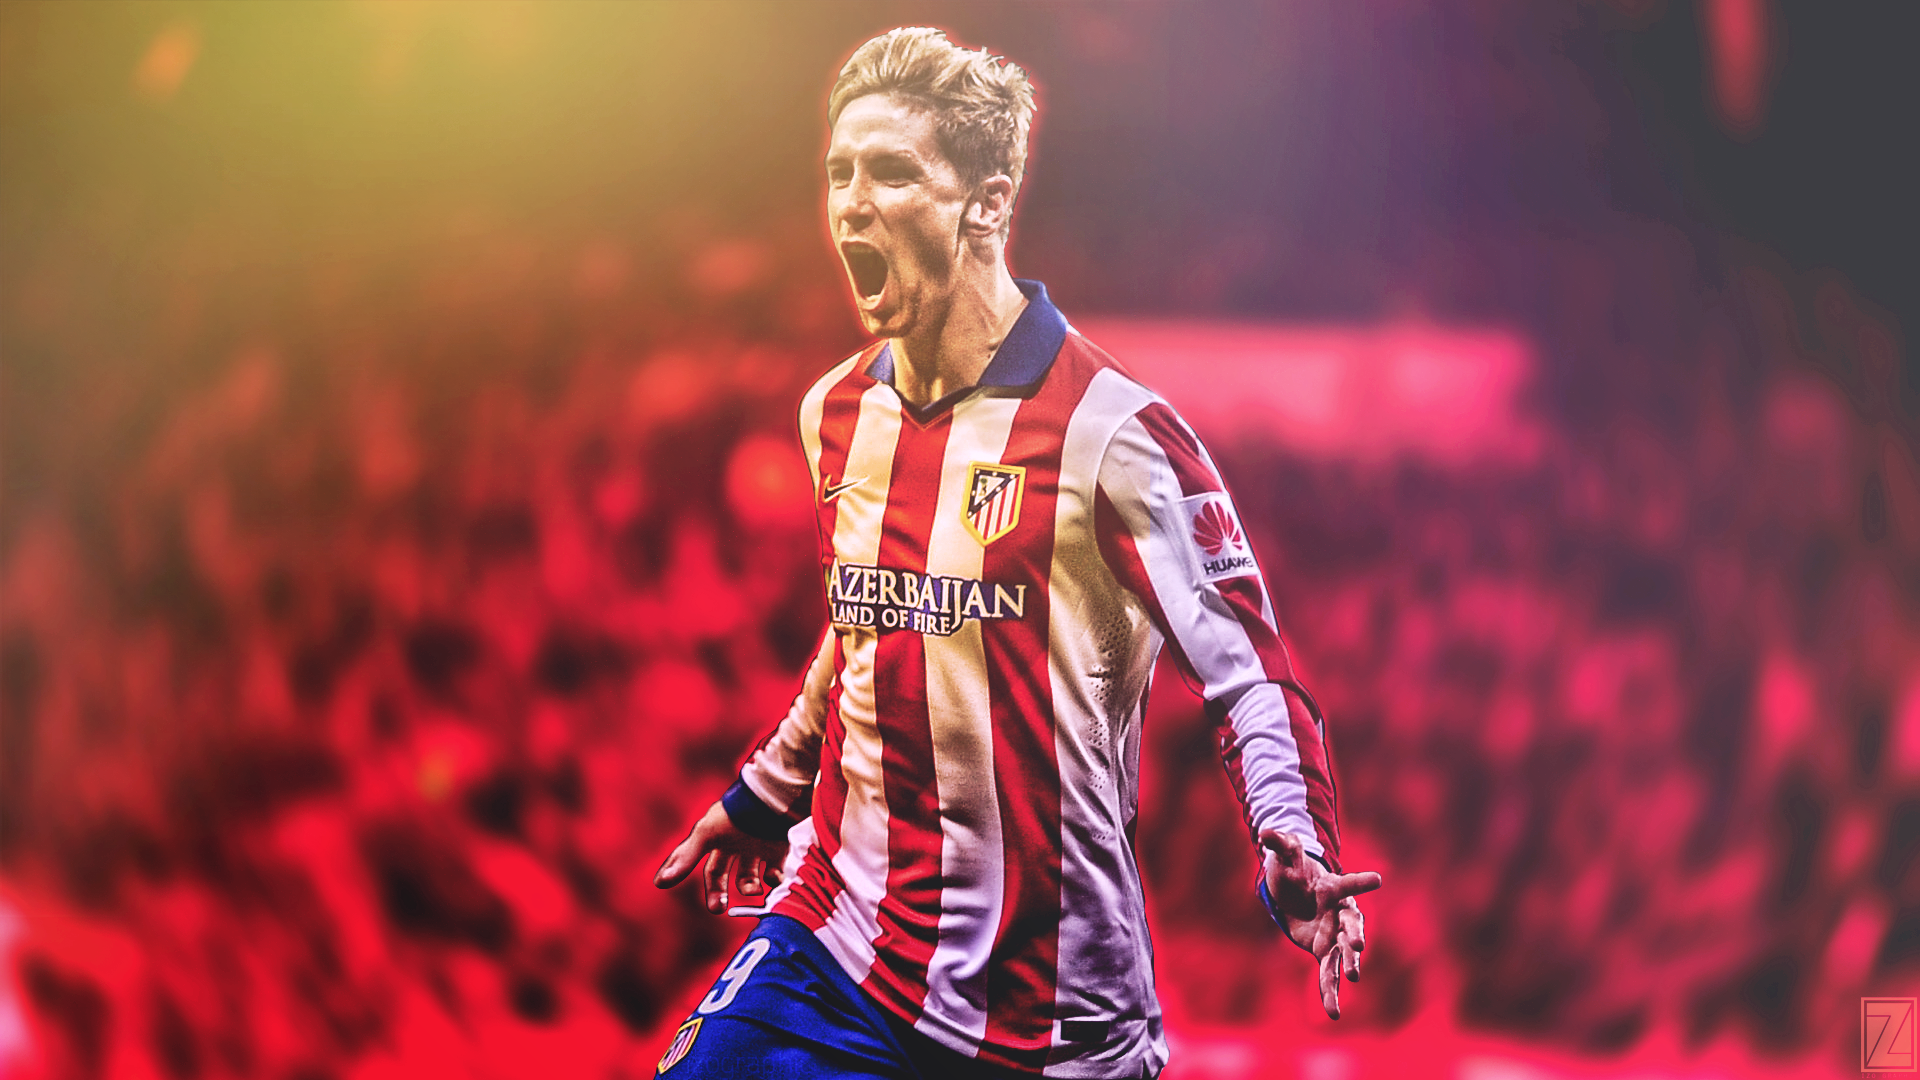 Fernando Torres Atletico Madrid Effect by izographic on 1920x1080